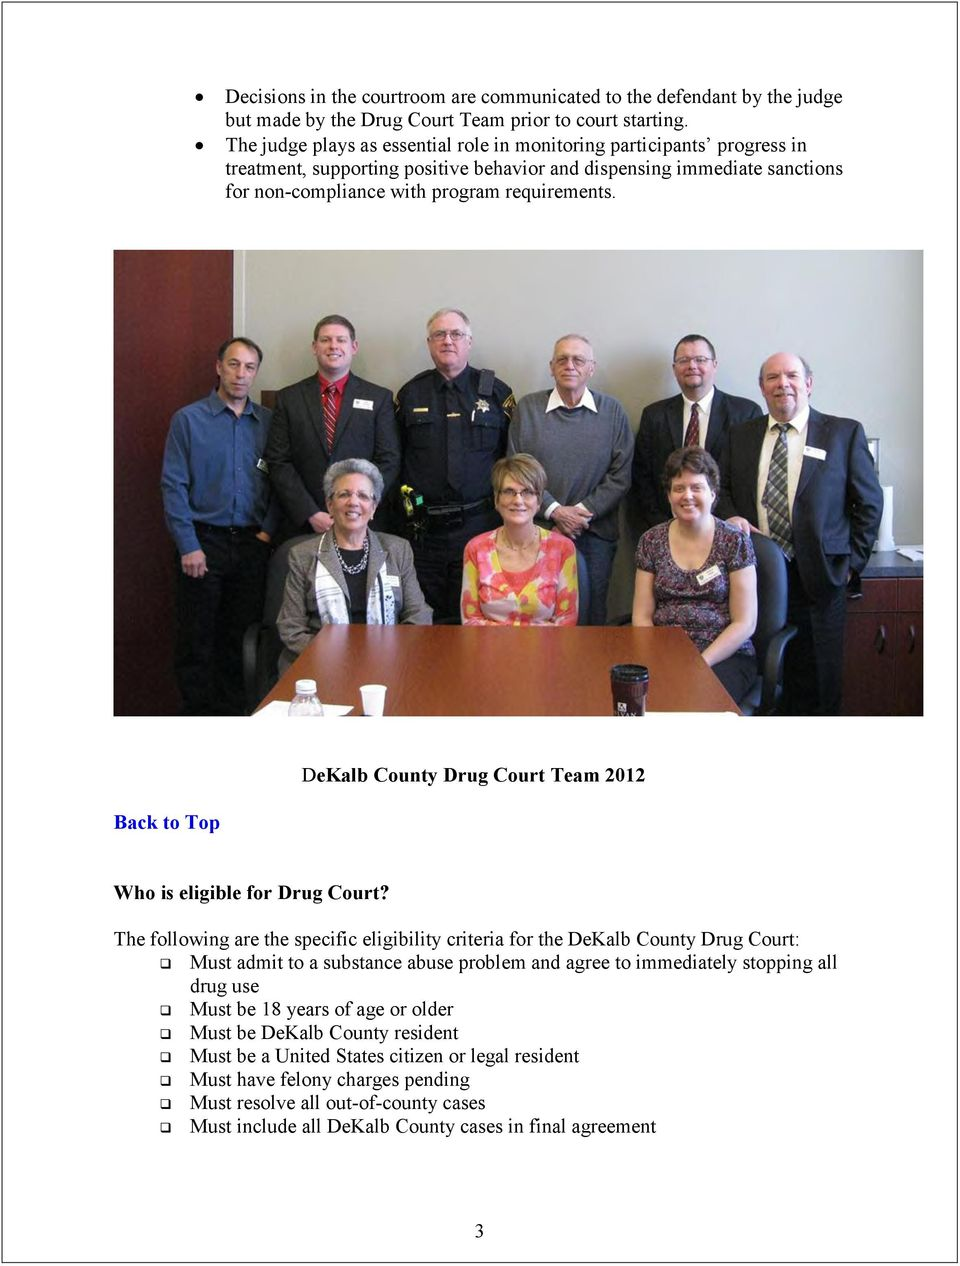 DeKalb County Drug Court Team 2012 Who is eligible for Drug Court?